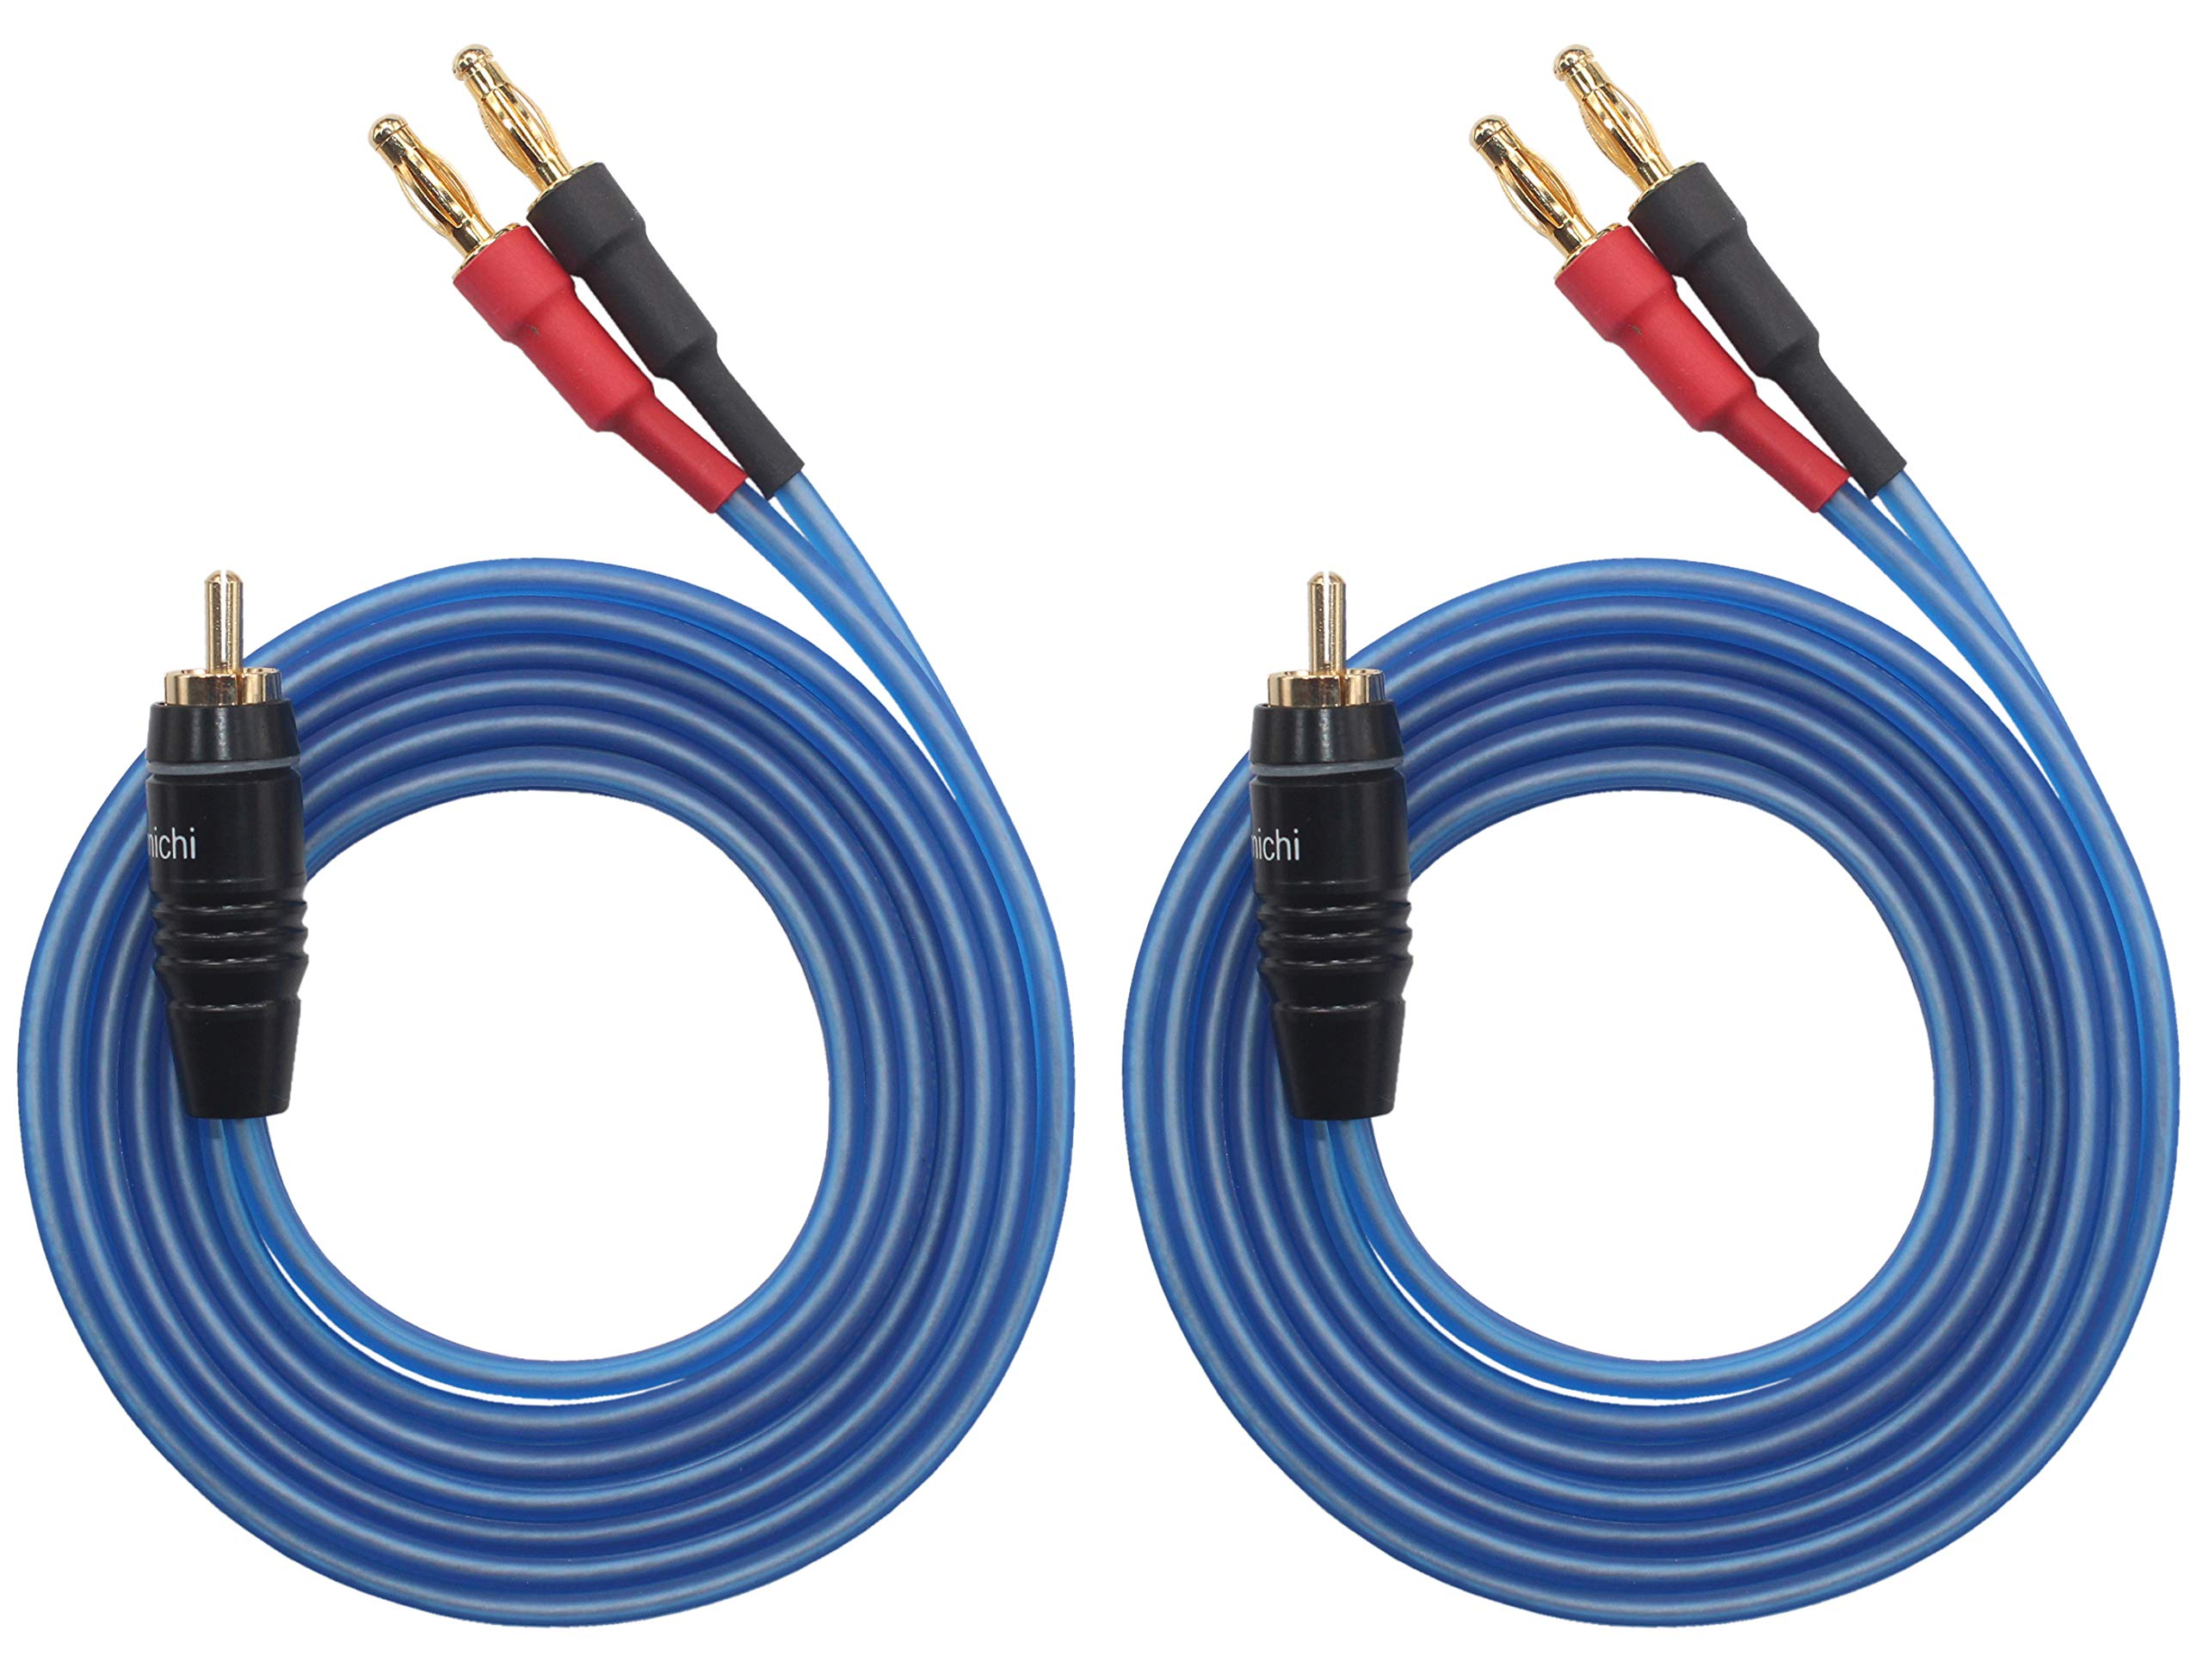 KK Cable Q-P2 18 GAUGE OFC Speaker Wire Pair with RCA Male (White & Red) to 2 Pair Banana (4banana) Plugs, Q-P2 (3M(9.8ft))